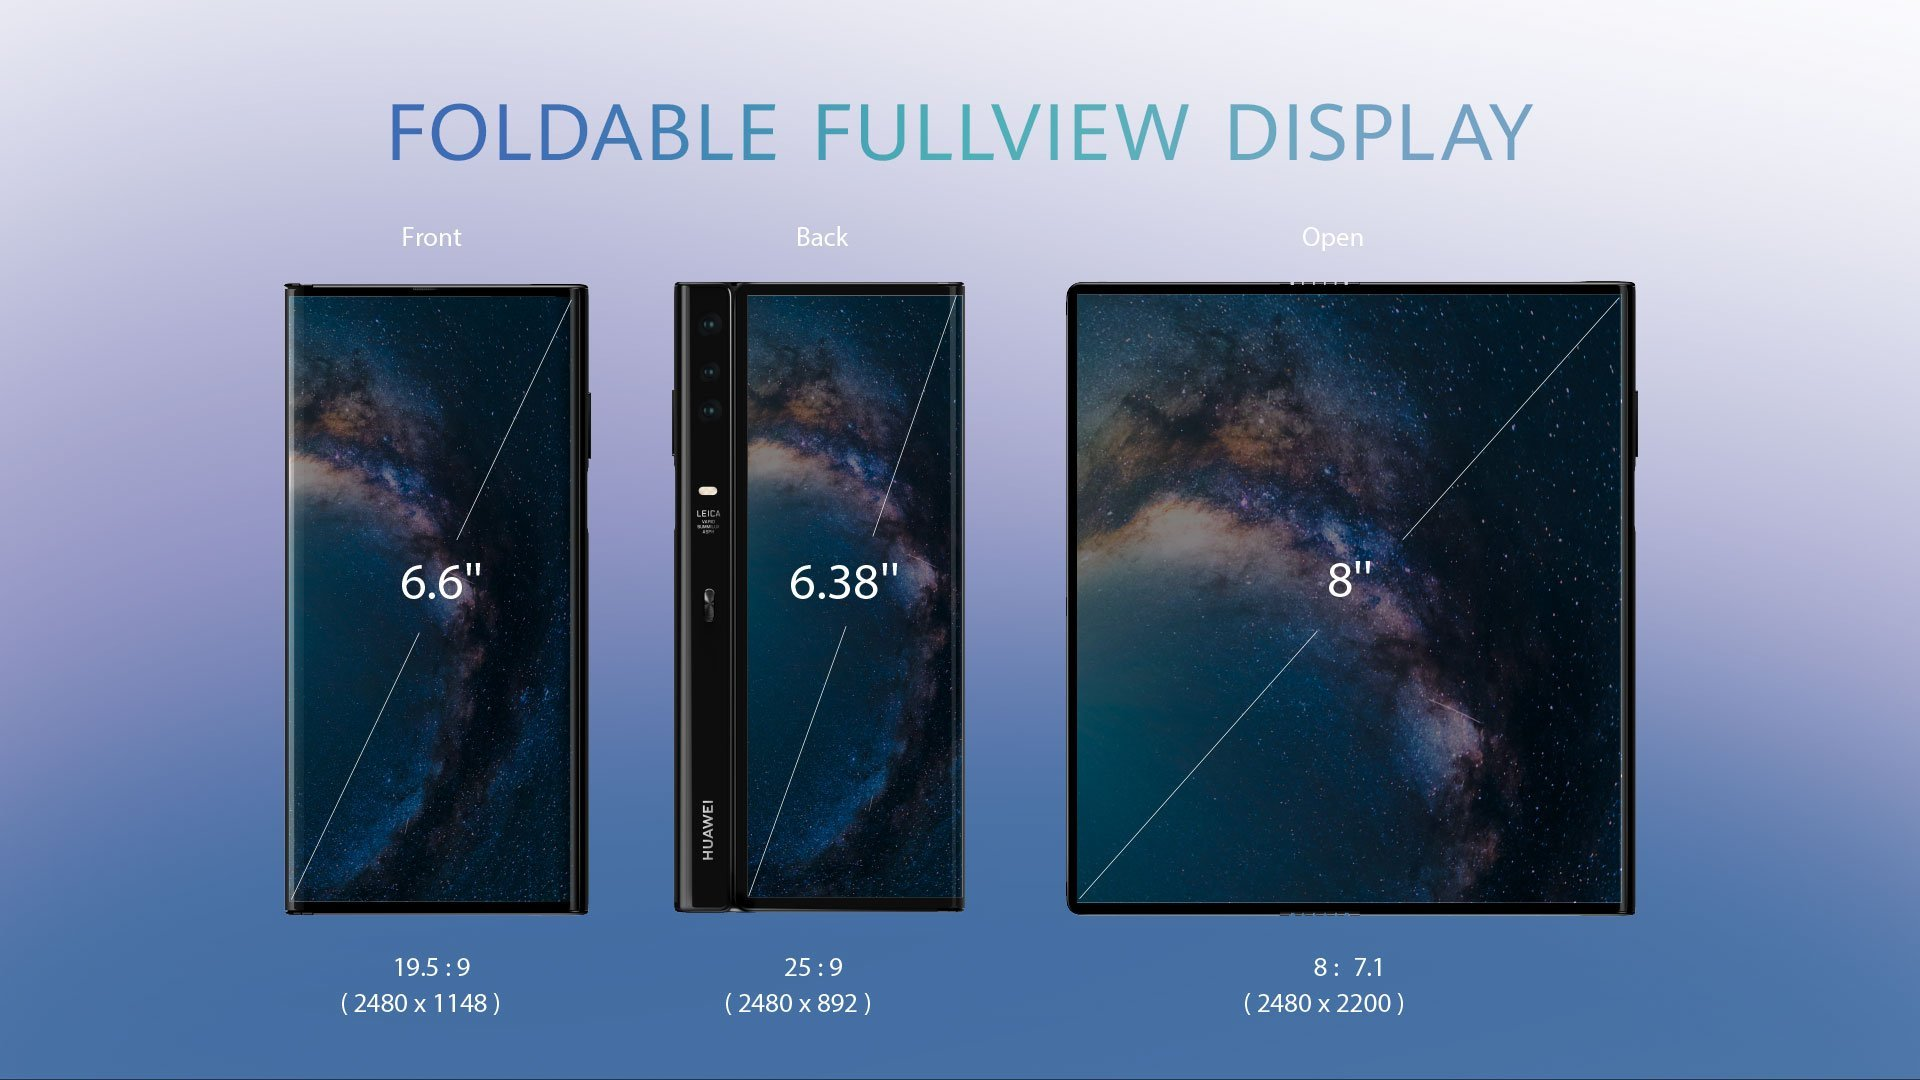 The foldable Fullview Display offers three different viewing configurations for users.